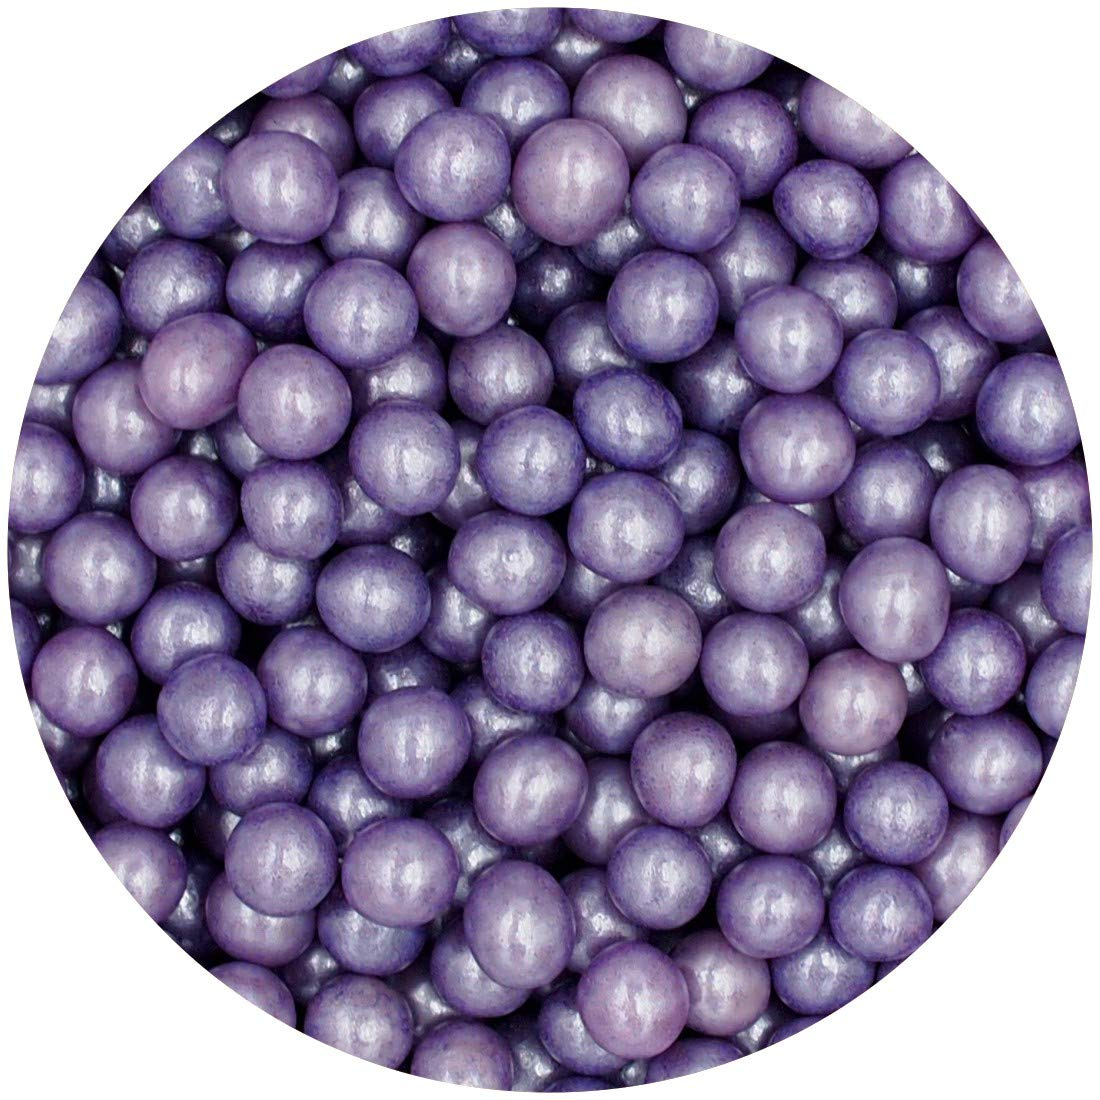 Natural 8mm Purple Nuts Dairy Soy Gluten GMO Free shimmer Pearls Bulk Pack